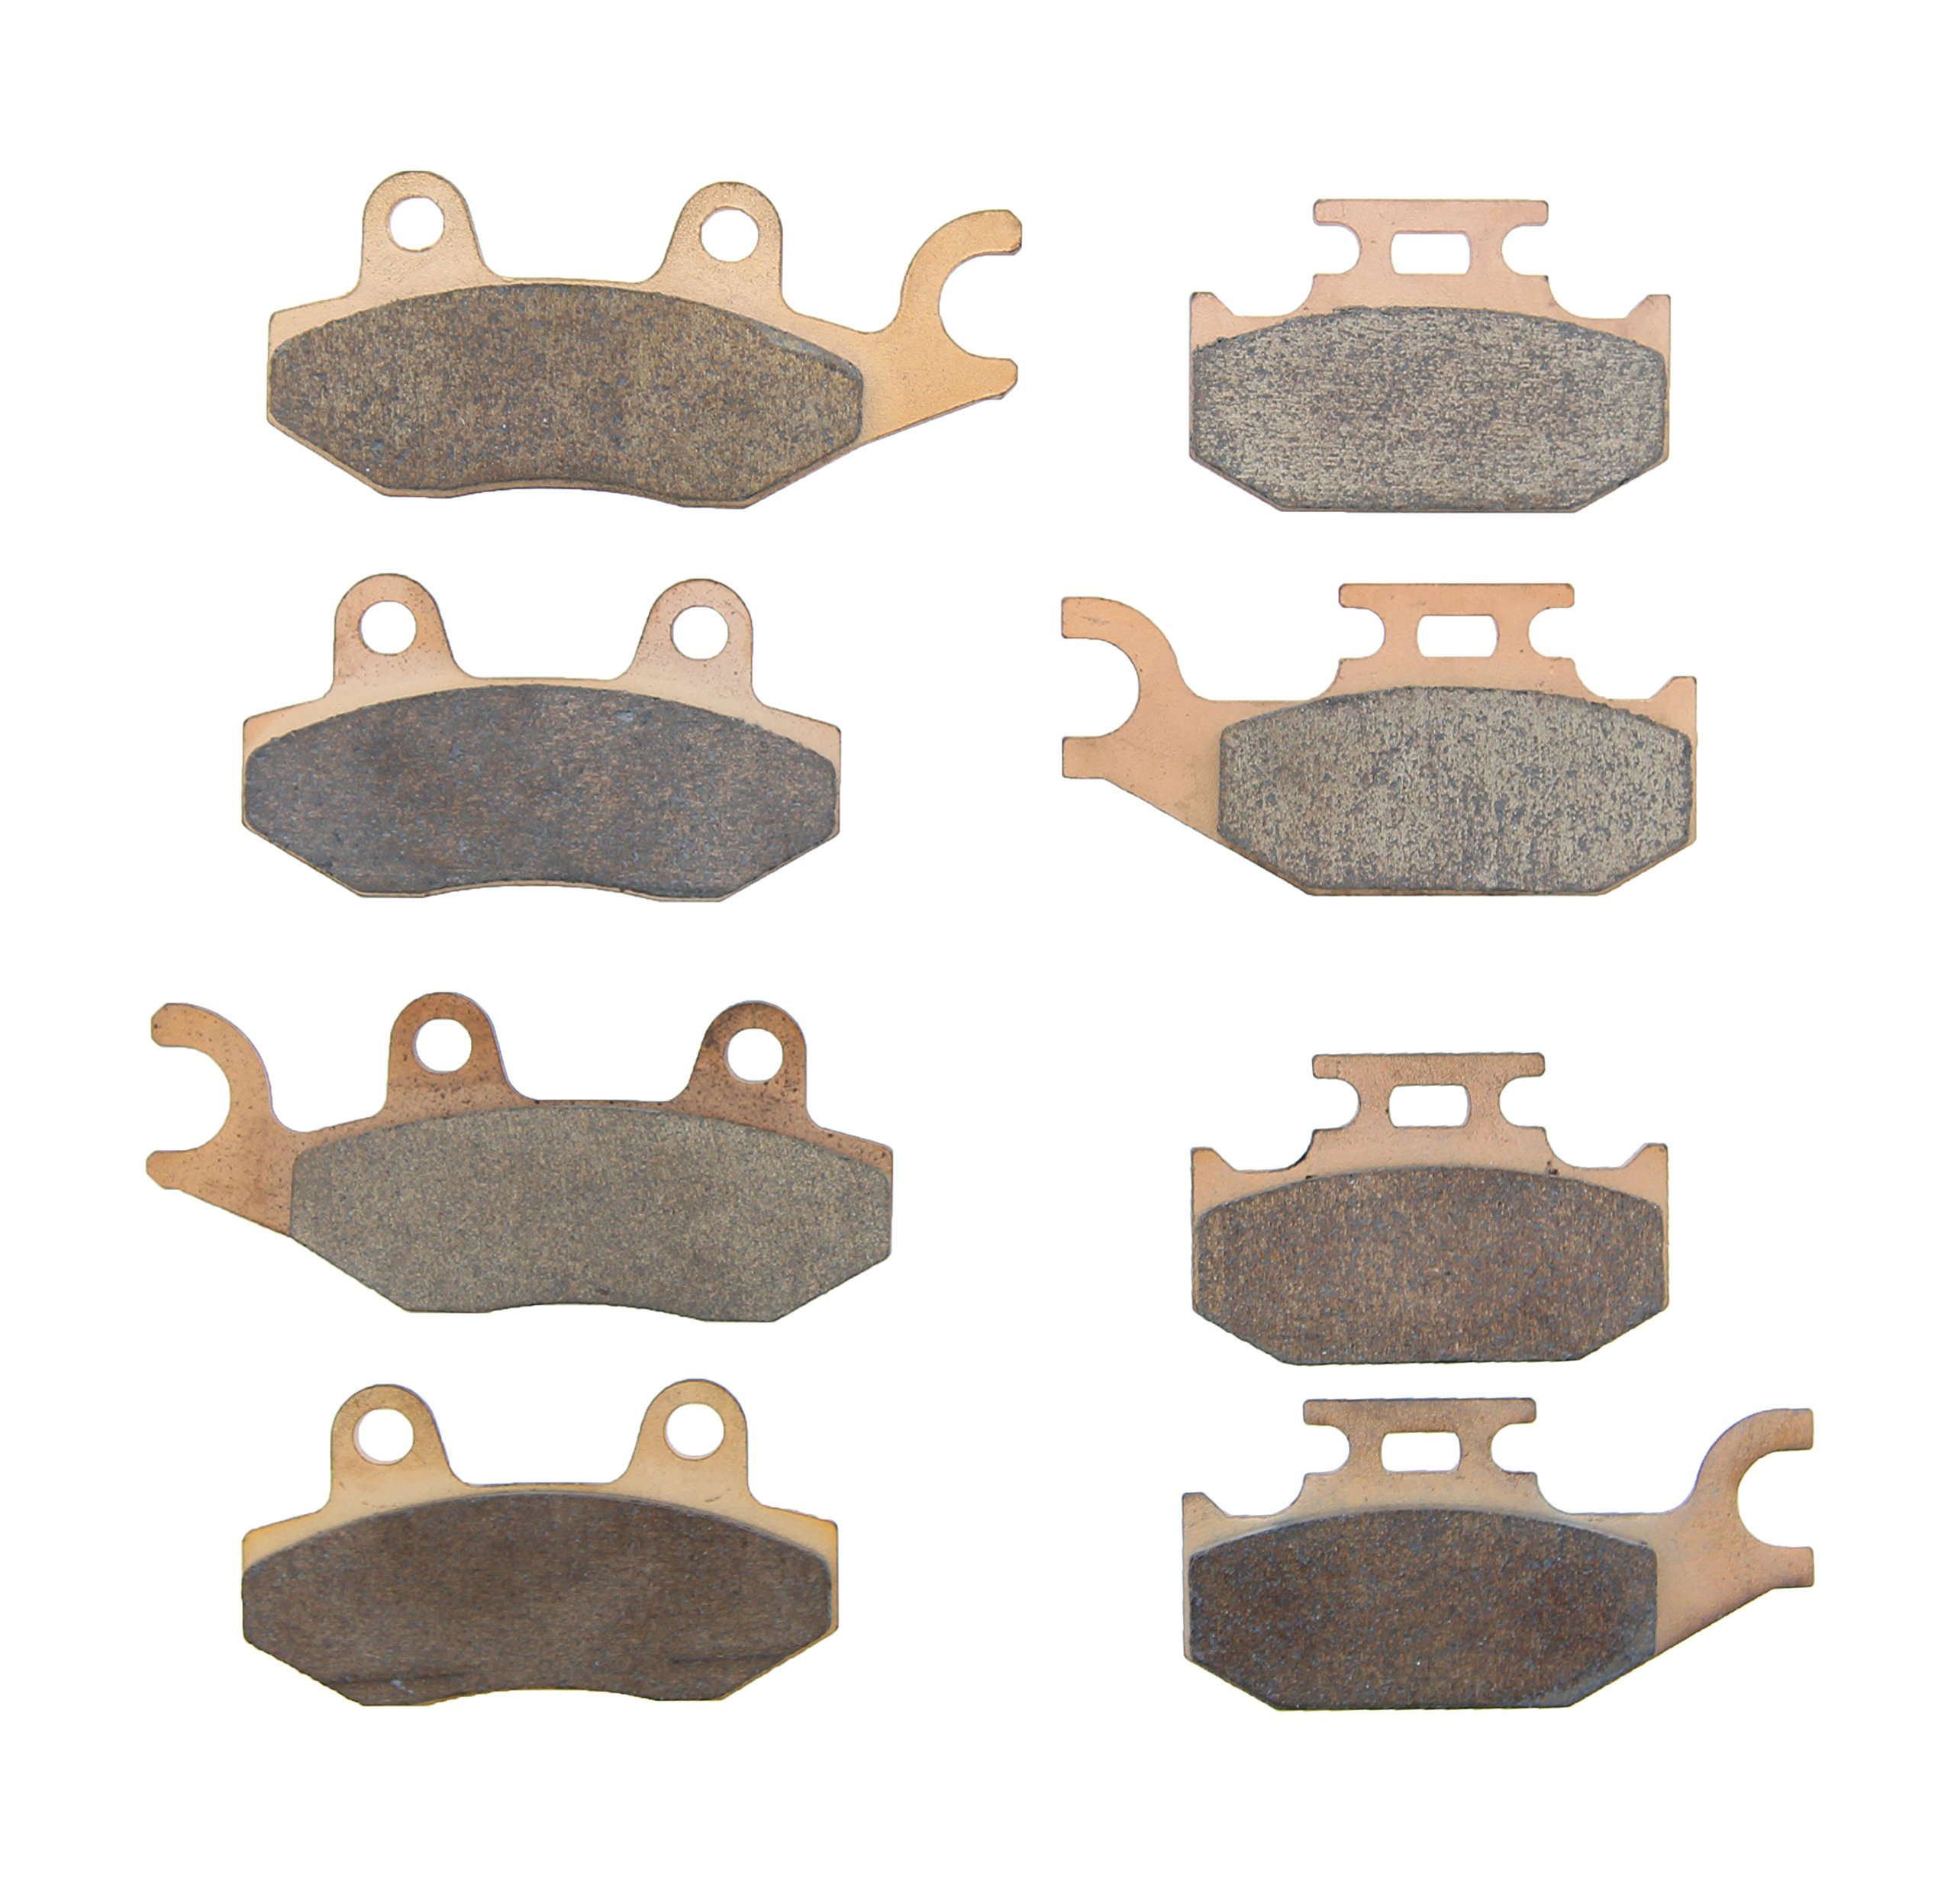 Brake Pads for Can-Am Maverick 1000R 2013-16 Front & Rear Brakes by Race-Driven